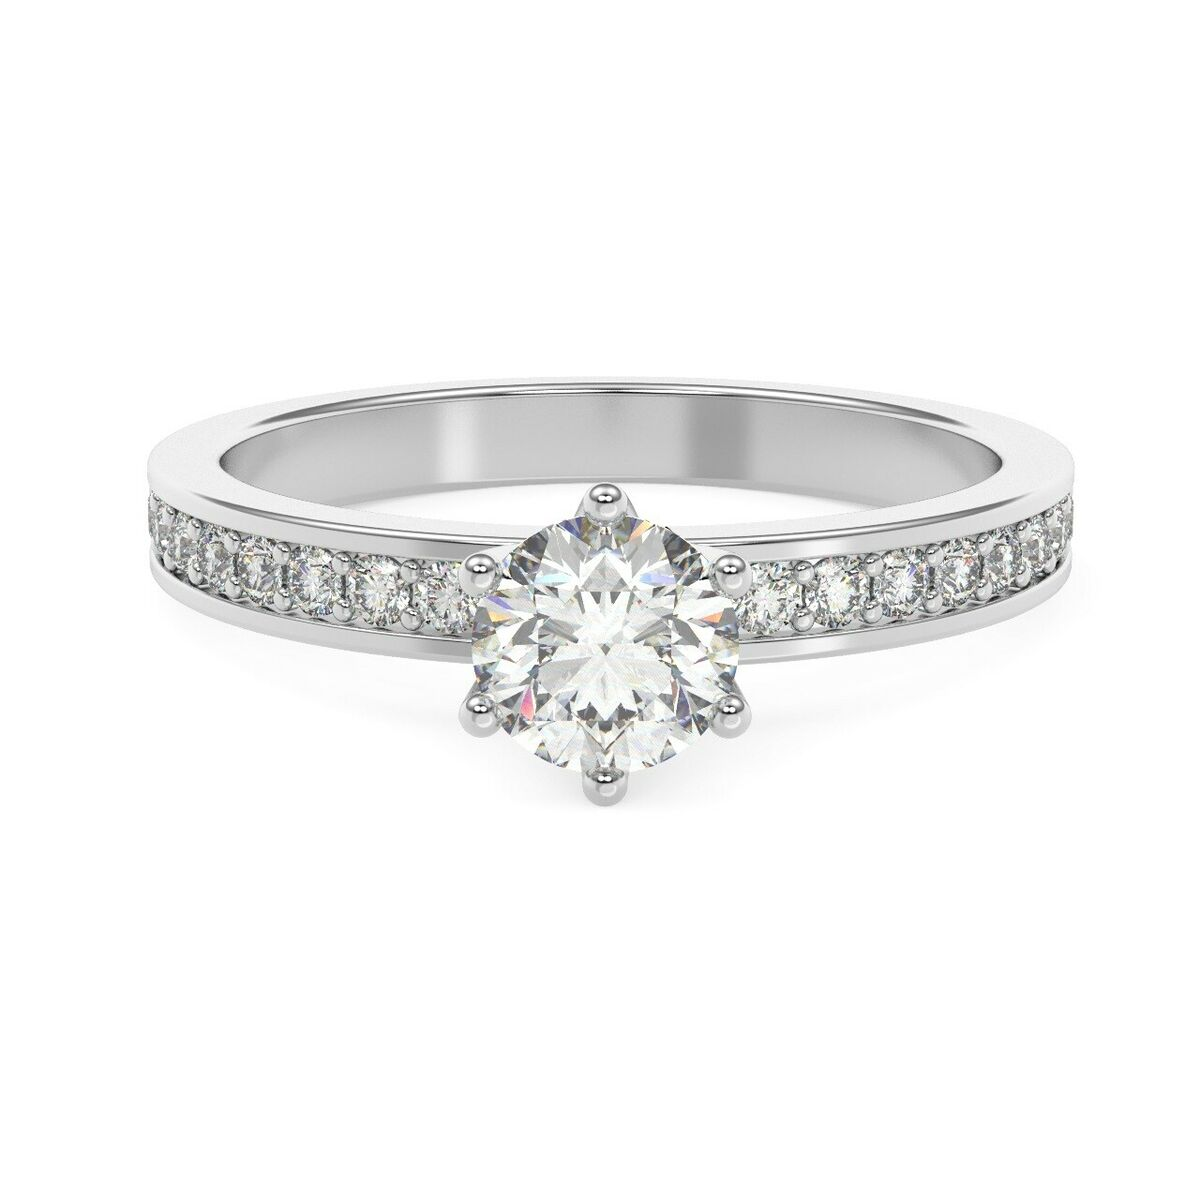 Round diamond six claw engagement ring 18k white gold uk hallmarked 